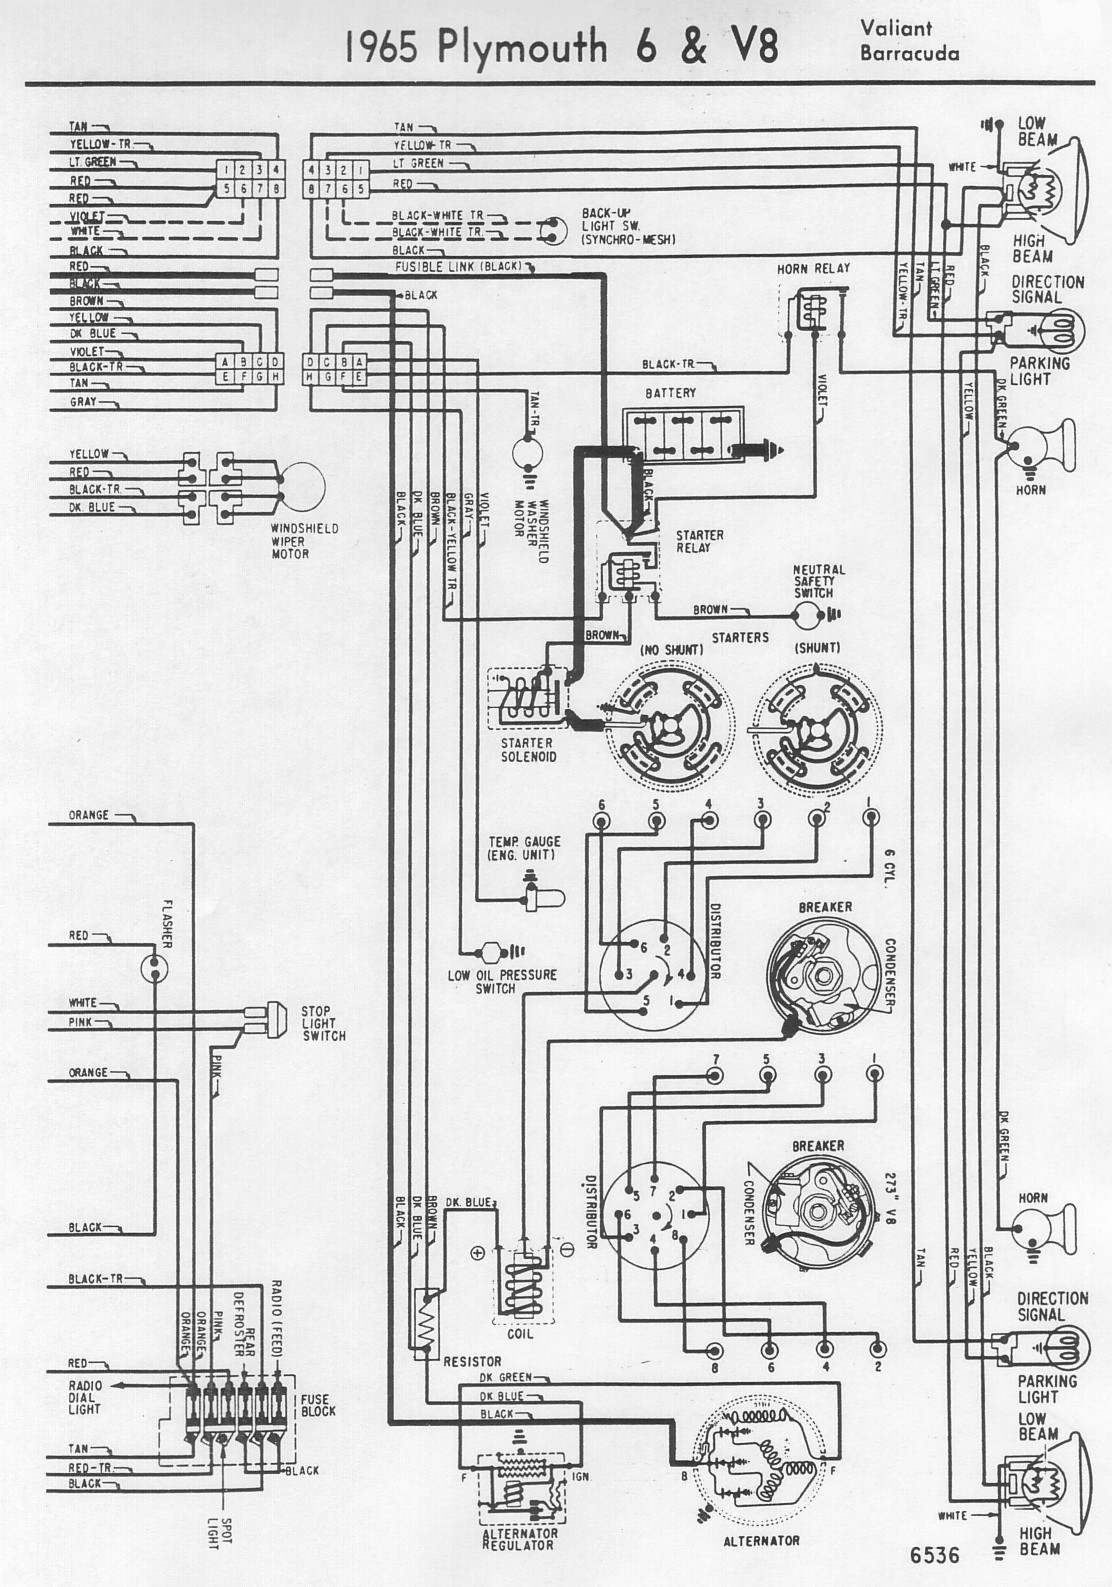 67 Barracuda Fuse Box Guide And Troubleshooting Of Wiring Diagram Plymouth Fuel Pressure 1966 Data Rh 34 Hrc Solarhandel De 69